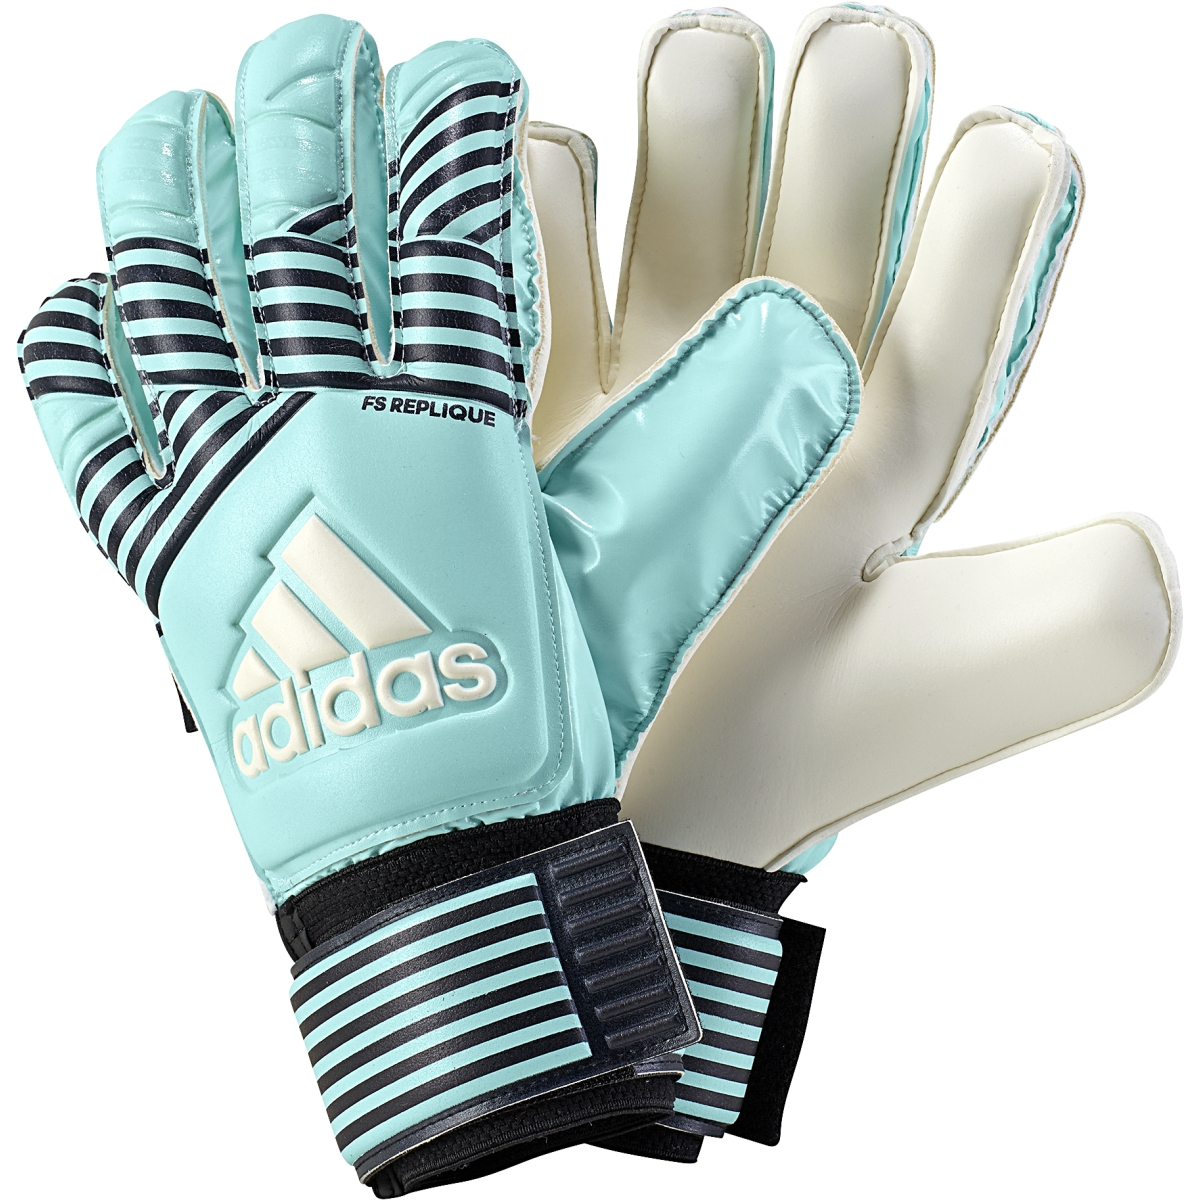 Take to the Pitch in adidas® Soccer Cleats. Pick up a pair of game-changing adidas soccer cleats at DICK'S Sporting Goods and get ready to take on the competition.. adidas soccer cleats are engineered with a lockdown fit and air-light feel for control and quick movements during play.